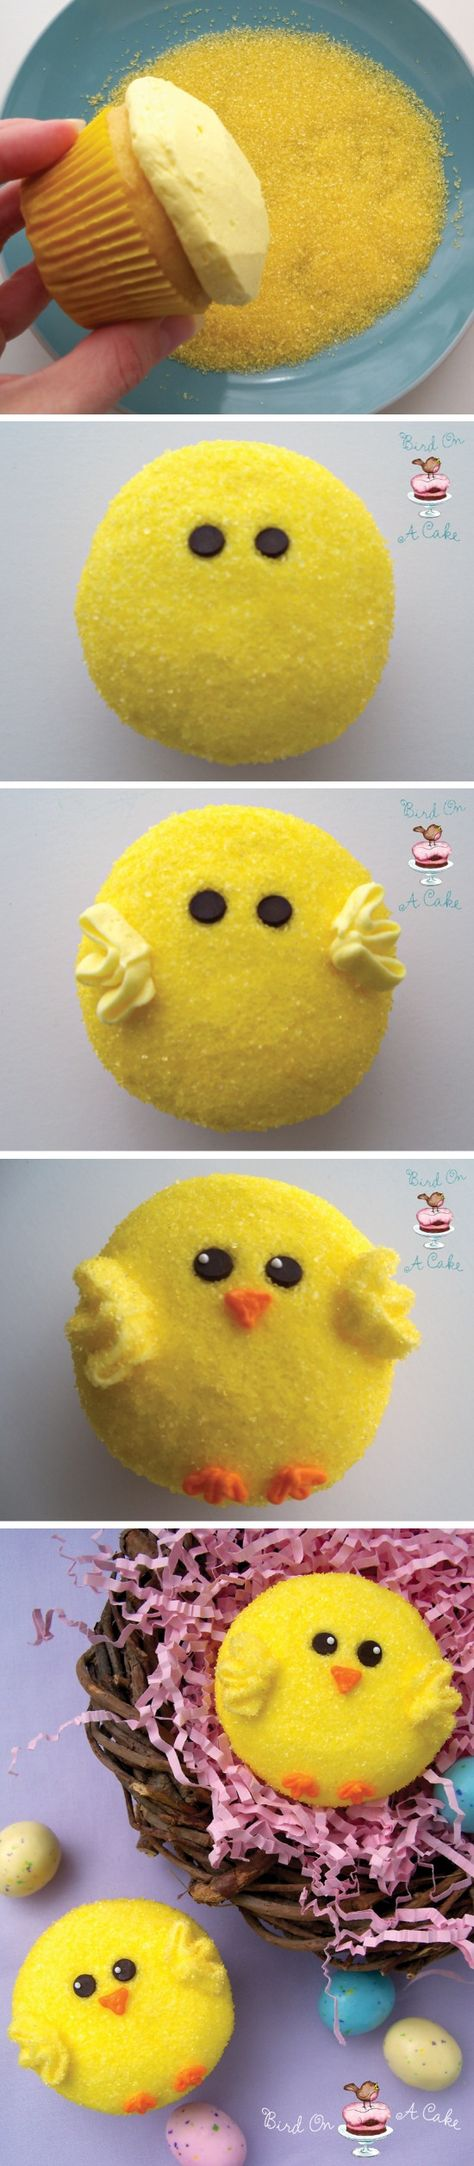 Easter Chick Cupcakes - Super cute & easy!